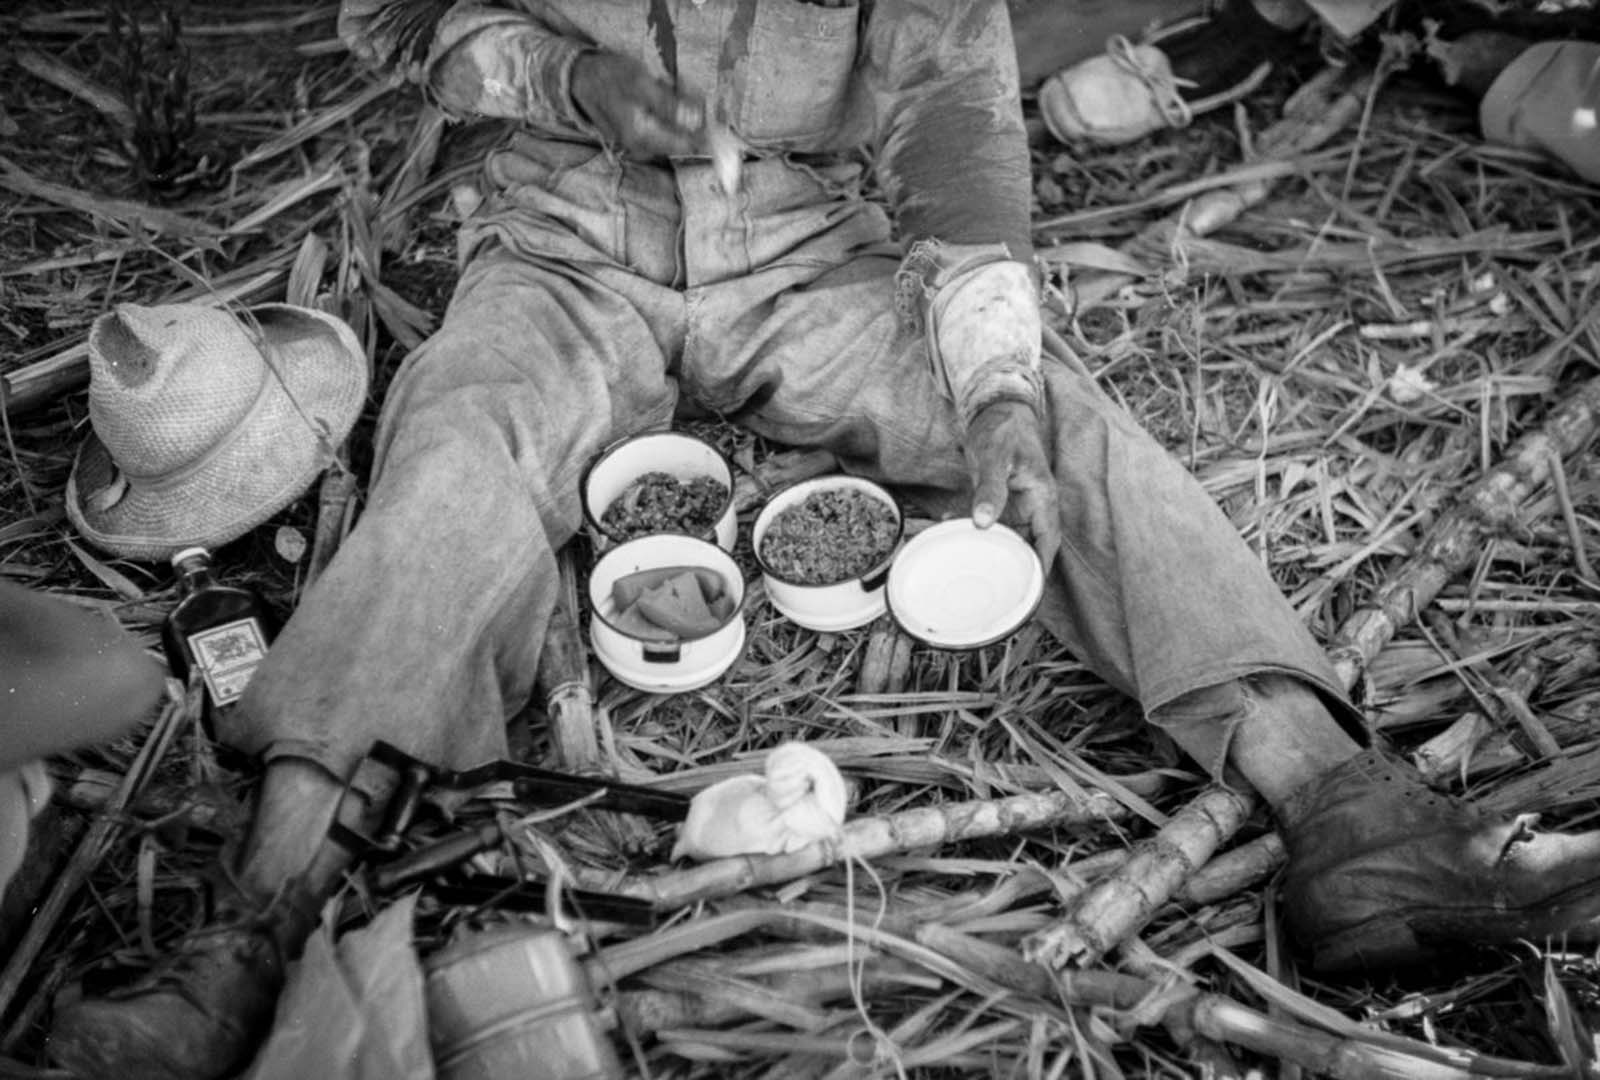 A worker on a sugar plantation pauses for a lunch of rice, beans, and papaya.